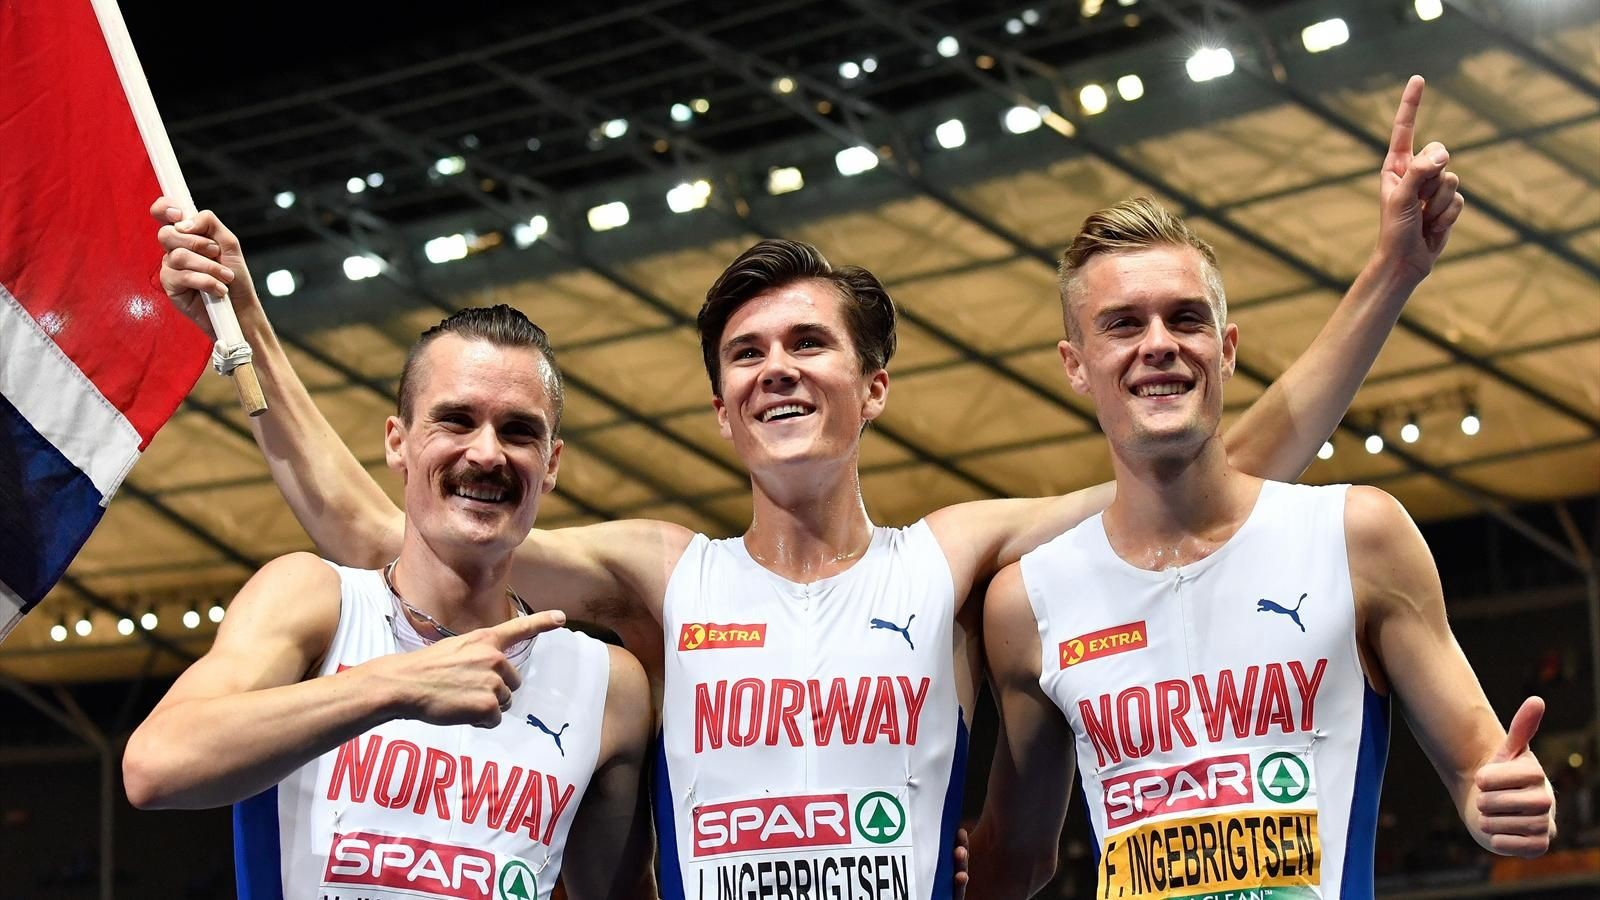 Ingebrigtsen brothers Jakob, Filip and Henrik hope to help Eliud Kipchoge break two hours for the marathon in Vienna in October